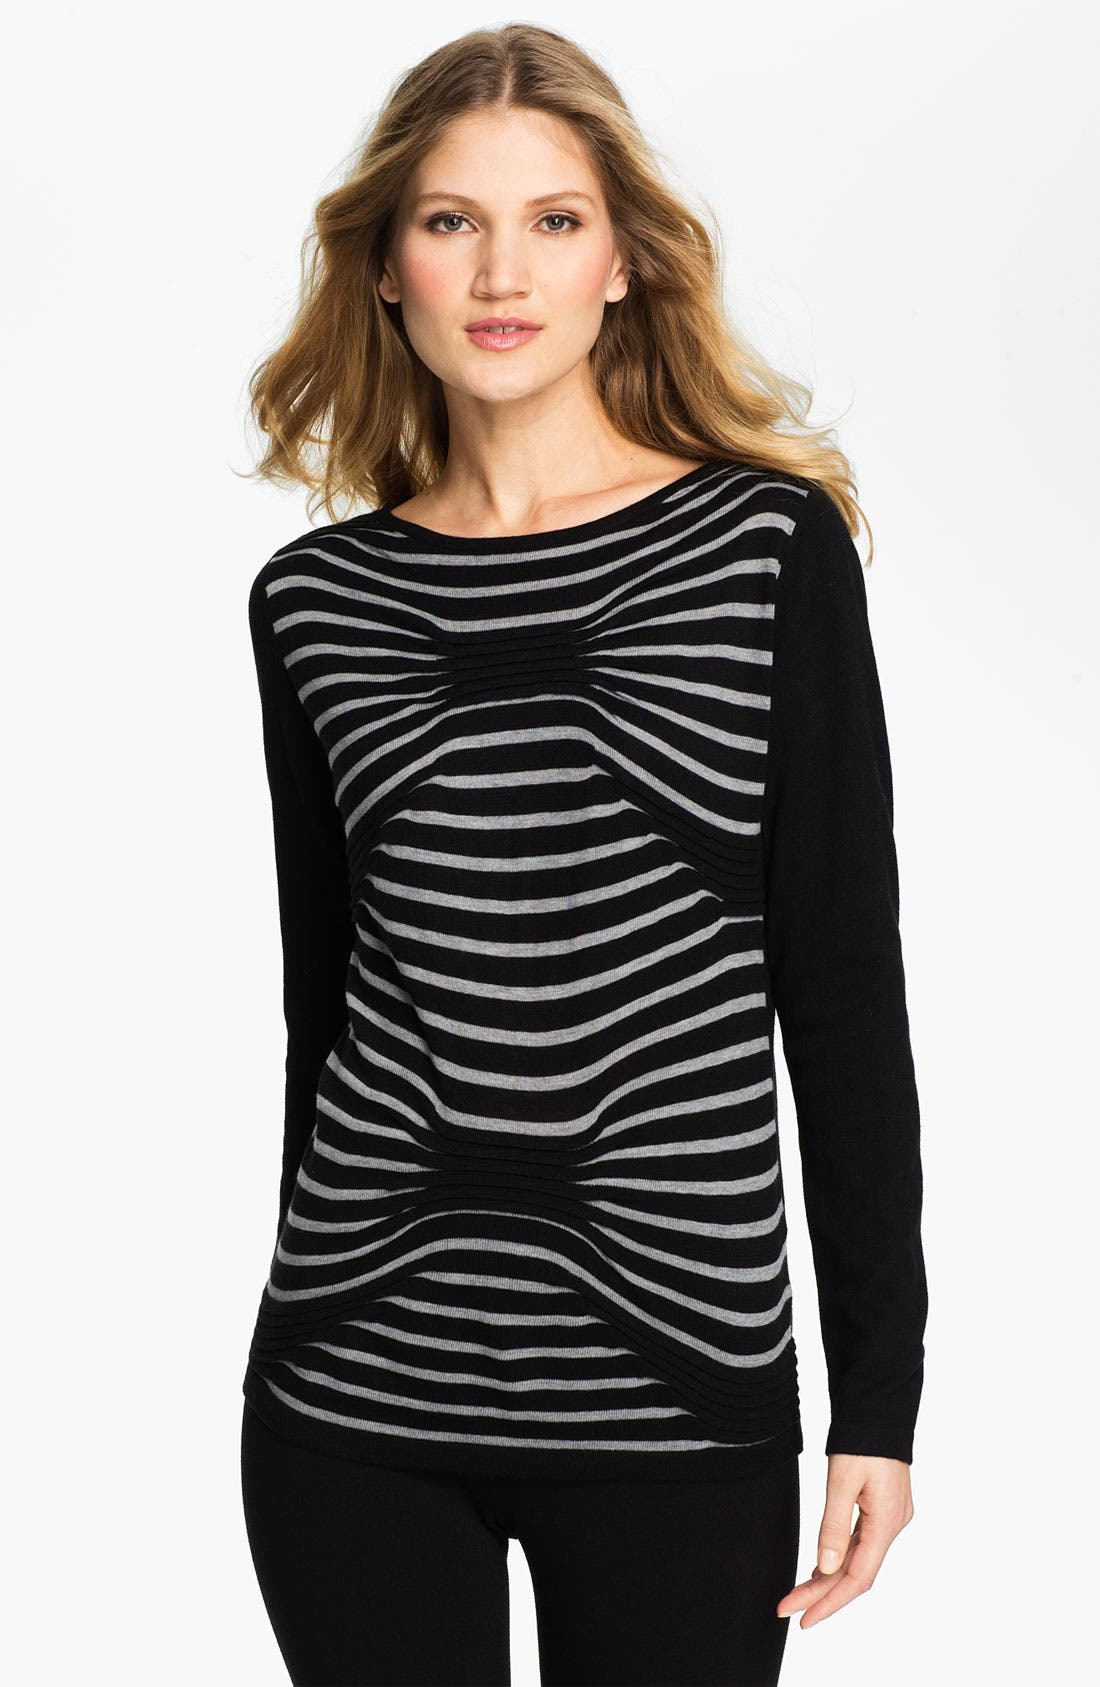 Main Image - Beatrix Ost Stripe & Pleat Sweater (Online Exclusive)